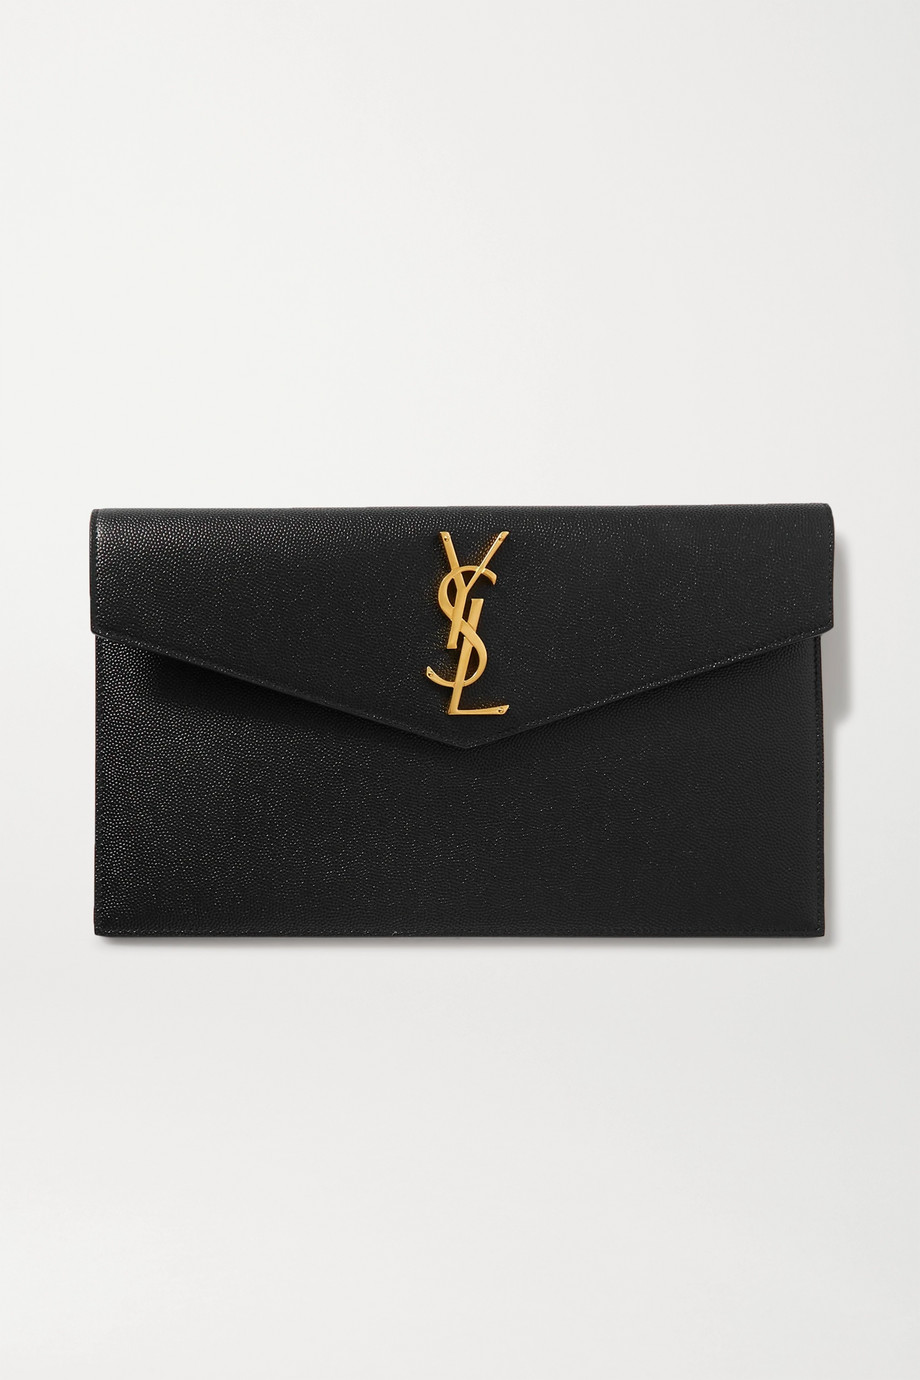 SAINT LAURENT Uptown textured-leather pouch